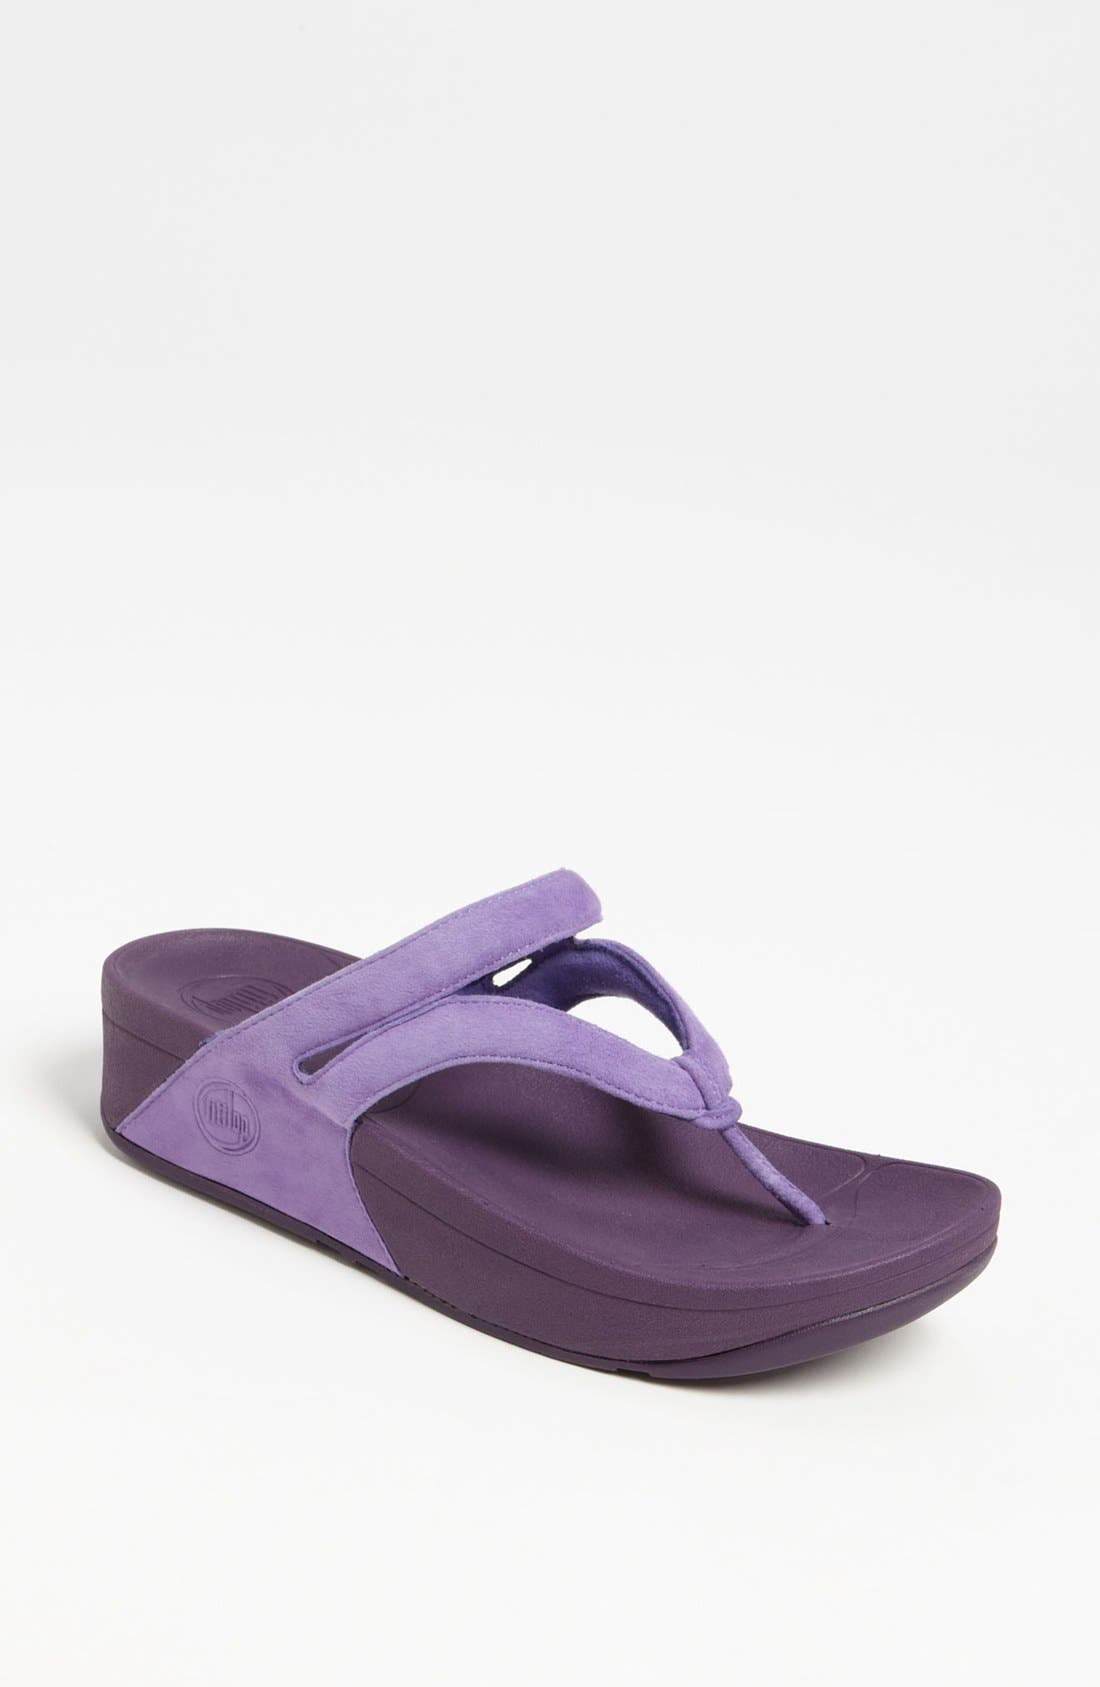 Alternate Image 1 Selected - FitFlop 'Whirl™' Suede Sandal